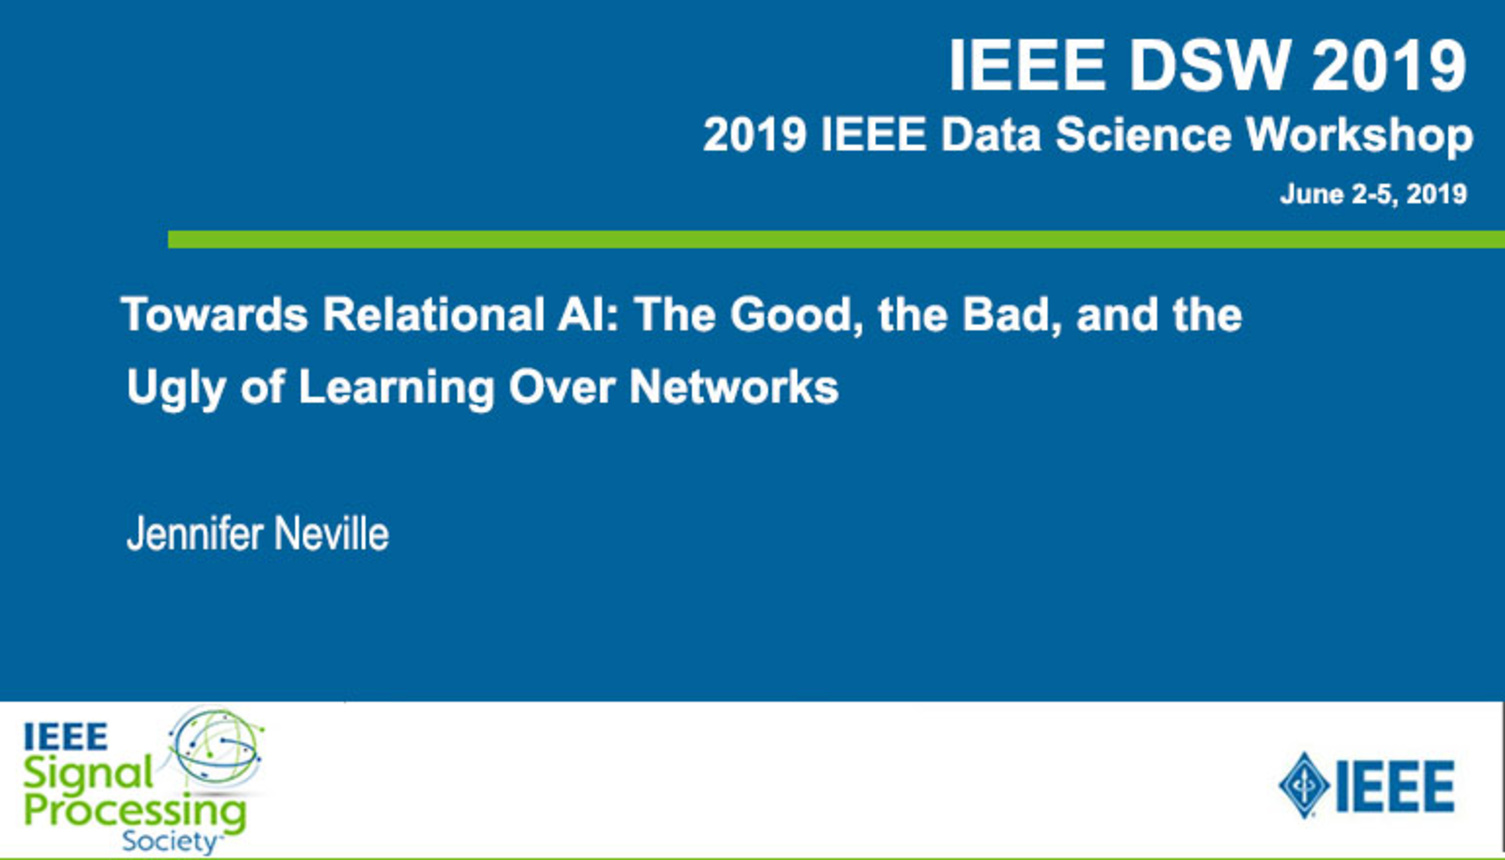 Towards Relational AI: The Good, the Bad, and the Ugly of Learning Over Networks